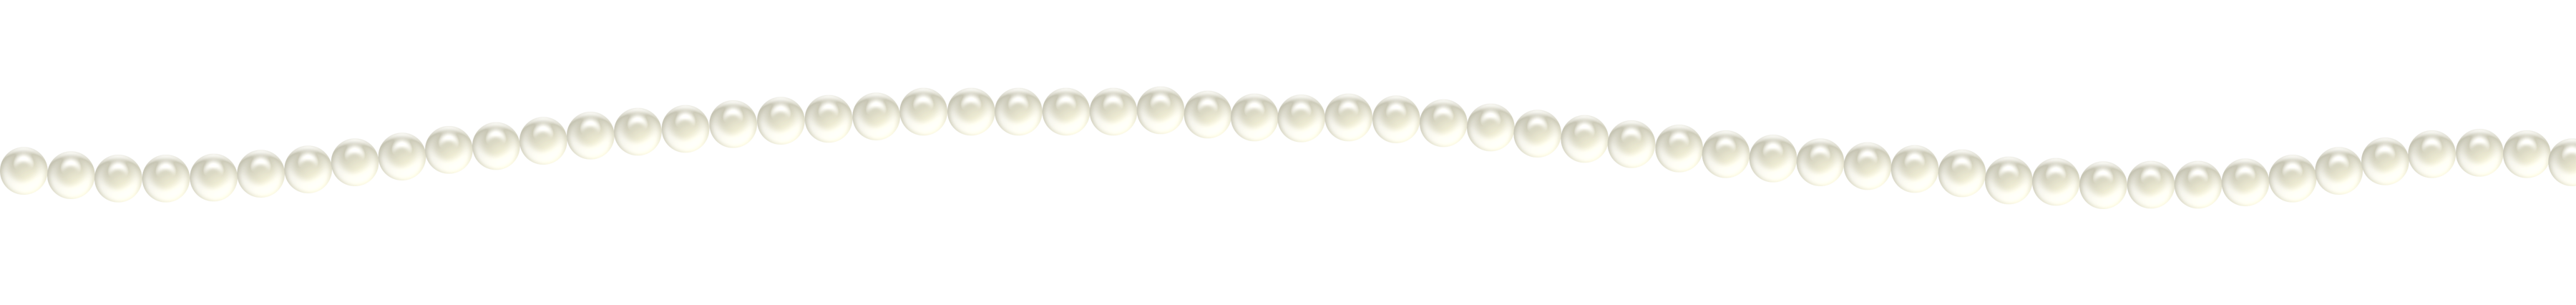 Pearl Decoration PNG Clipart Image.